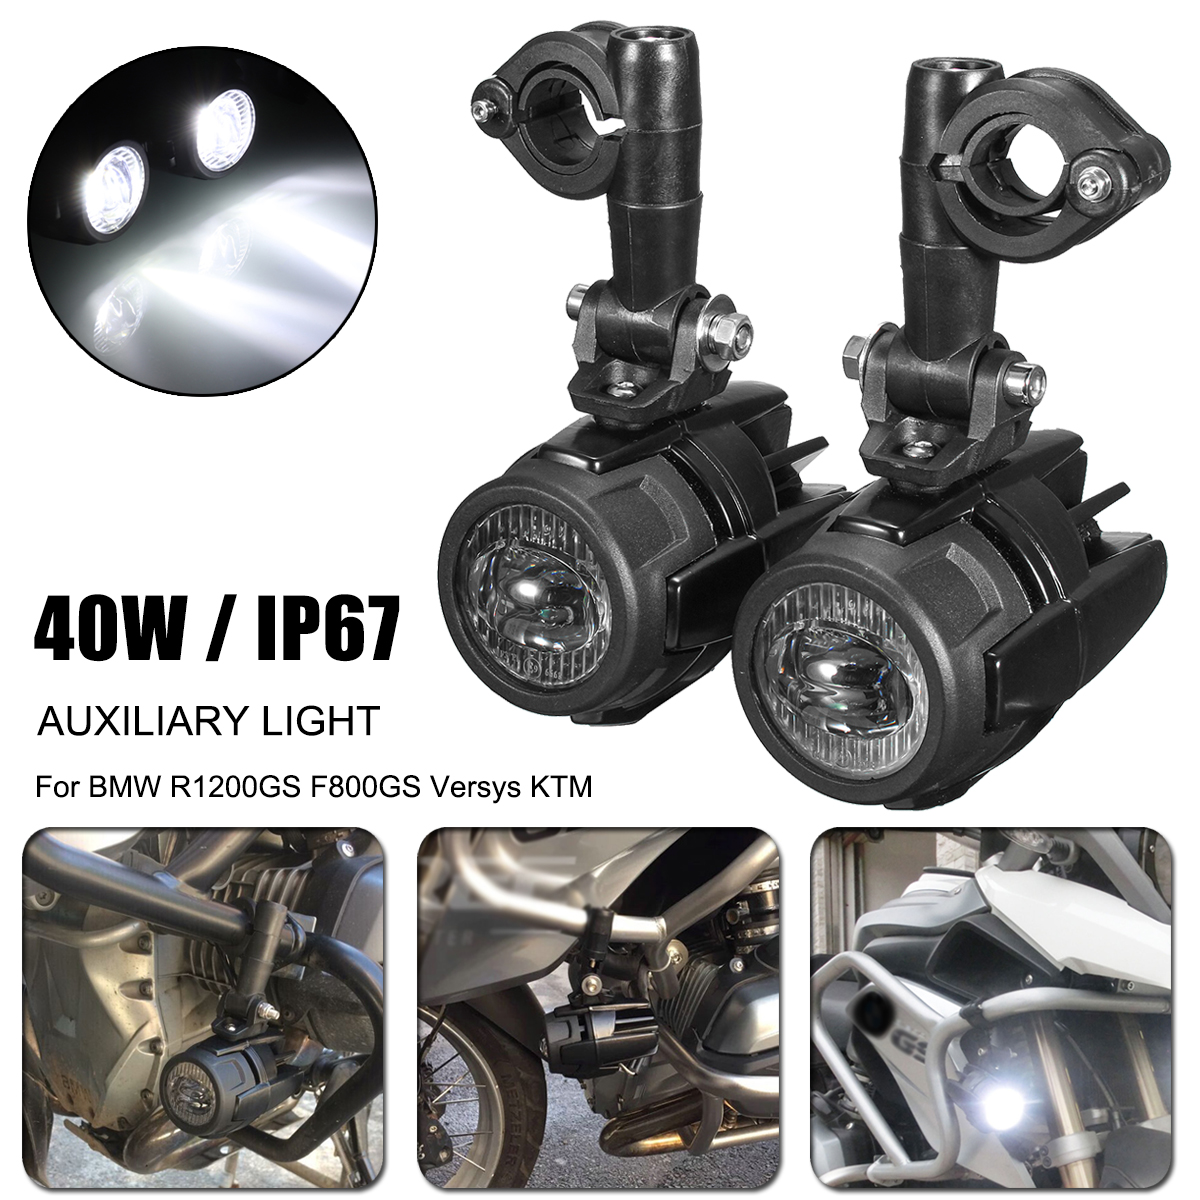 Motorcycle LED Auxiliary Fog Light Aluminum Alloy Safety Driving Spot Lamp For BMW R1200GS ADV F800G